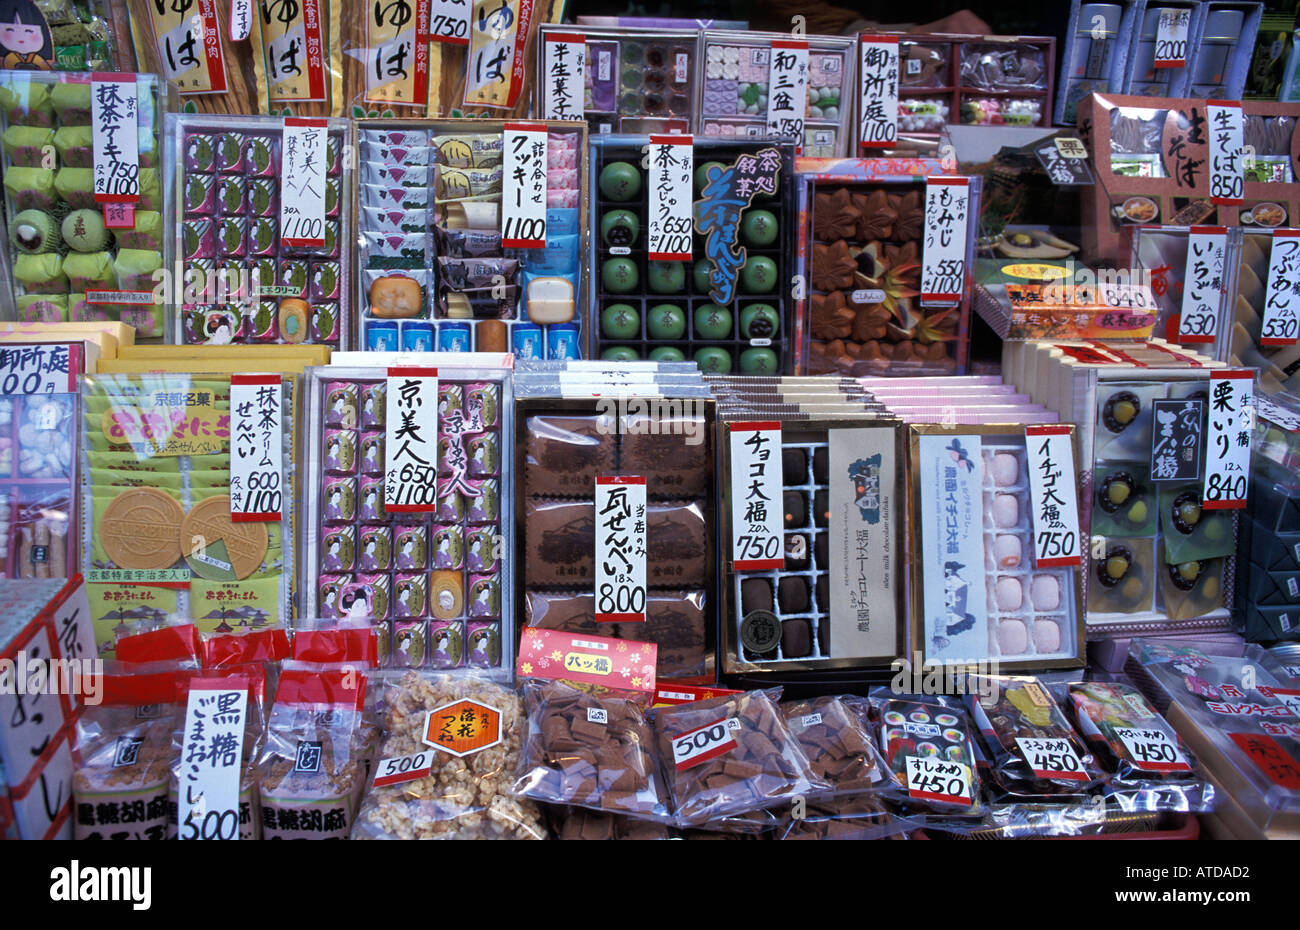 Japanese shop selling snacks and gift wrapped foods Kyoto Japan - Stock Image